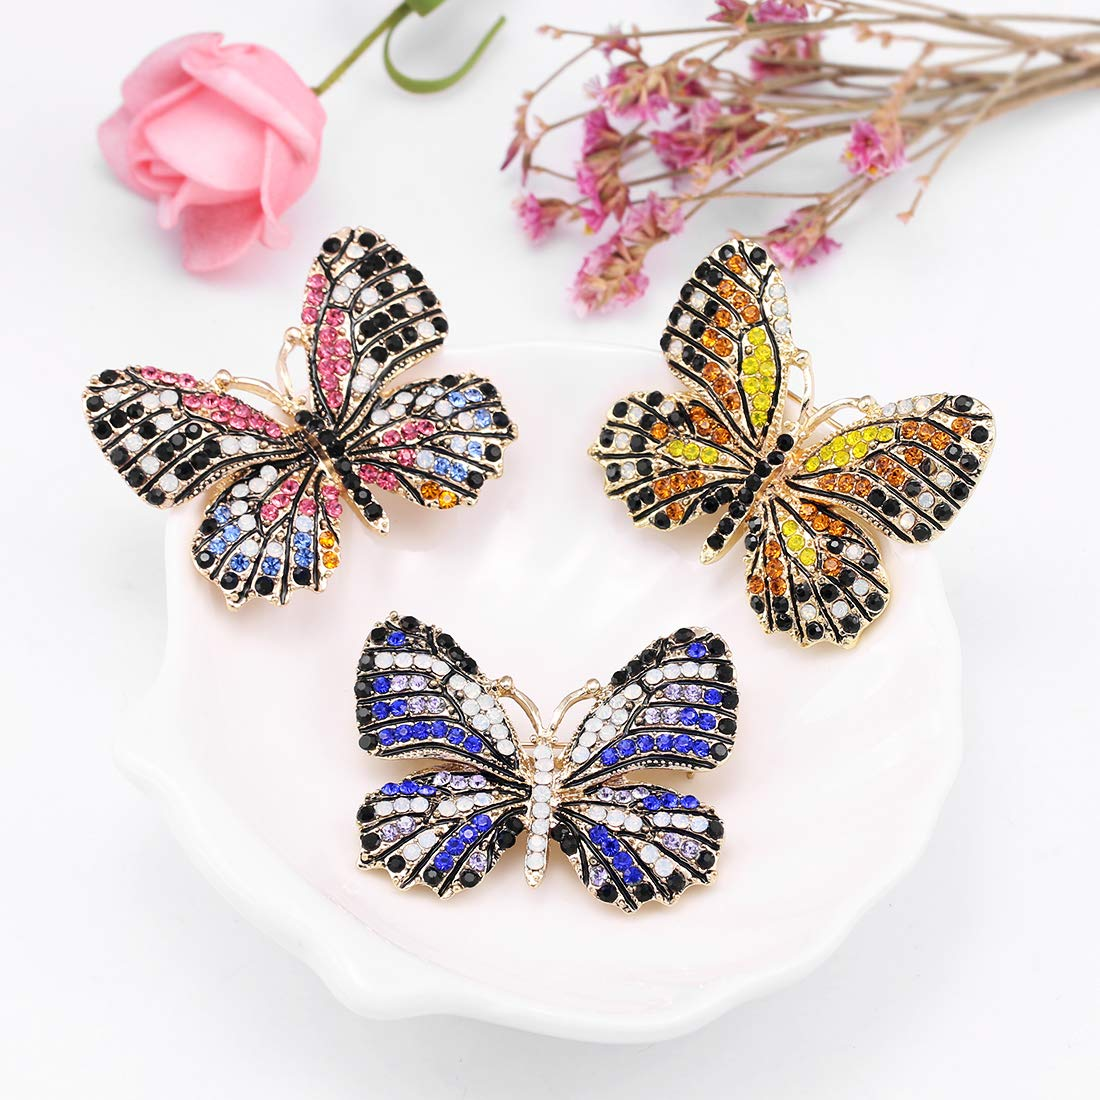 WeimanJewelry Lot6pcs Multicolor Rhinestone Crystal Butterfly Brooch Pin Set for Women by WeimanJewelry (Image #5)